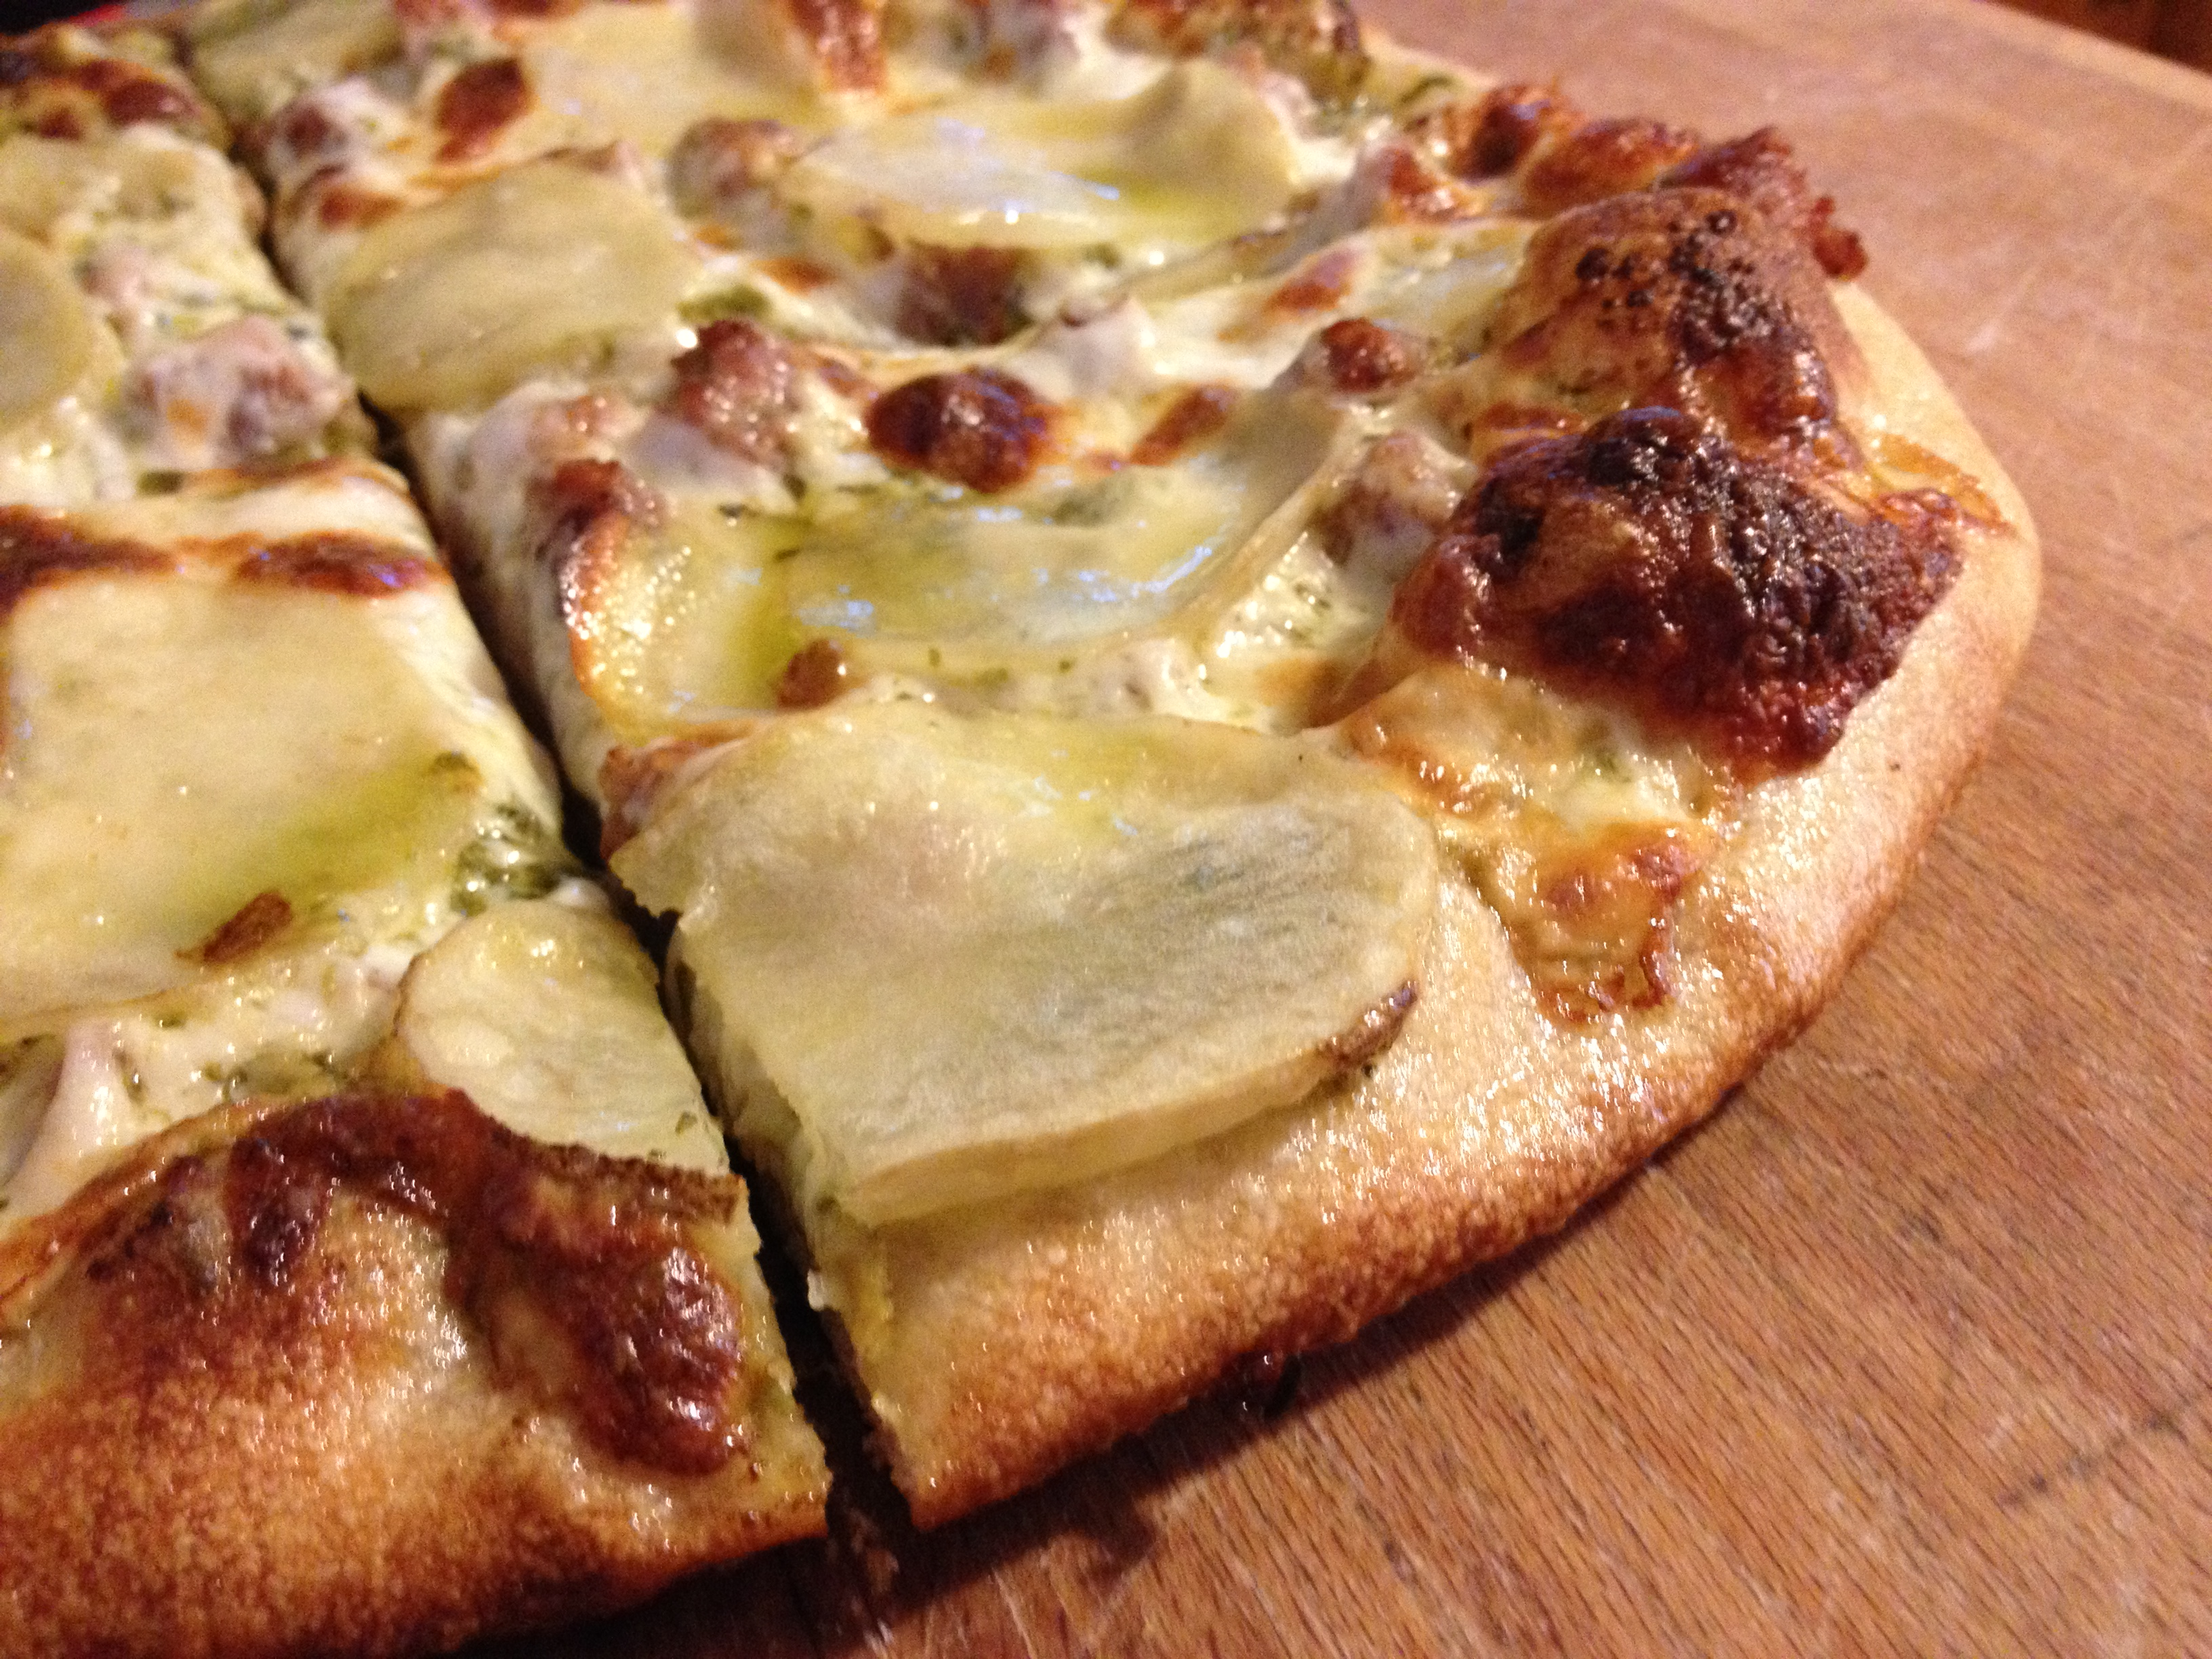 Pizza with sausage and potatoes